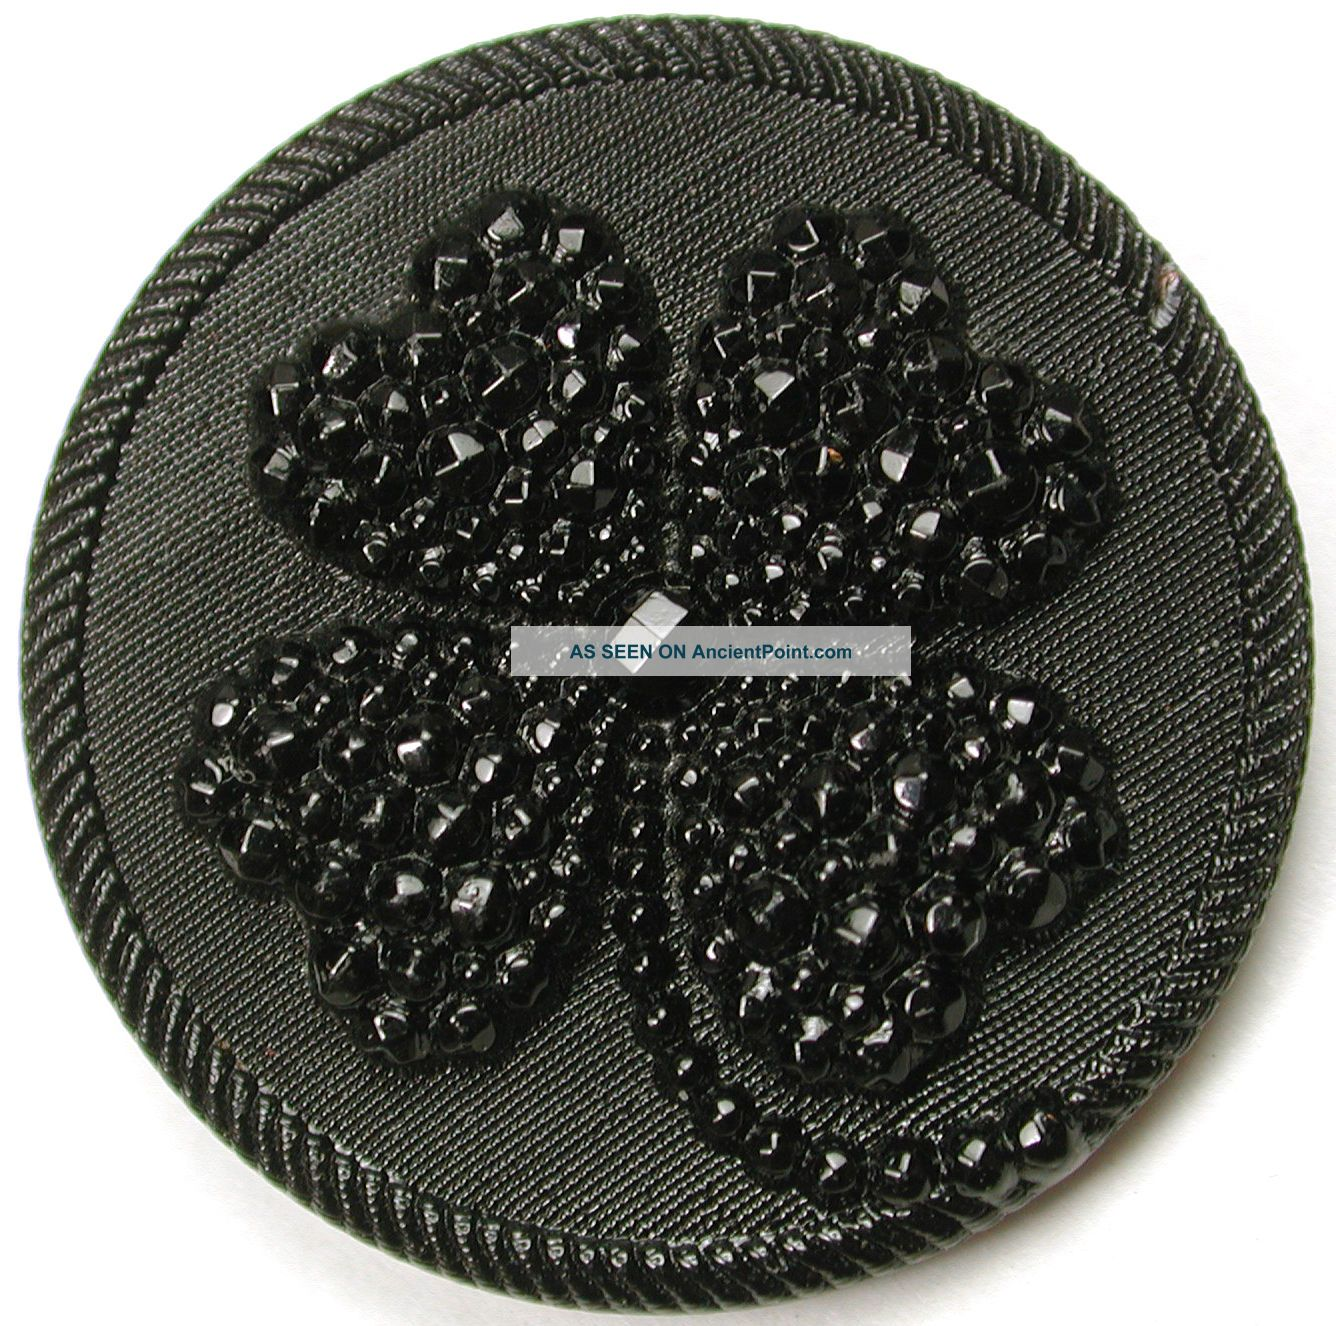 Lg Sz Antique Black Glass Button Fancy 4 Leaf Leaf Clover Design - 1 & 1/4